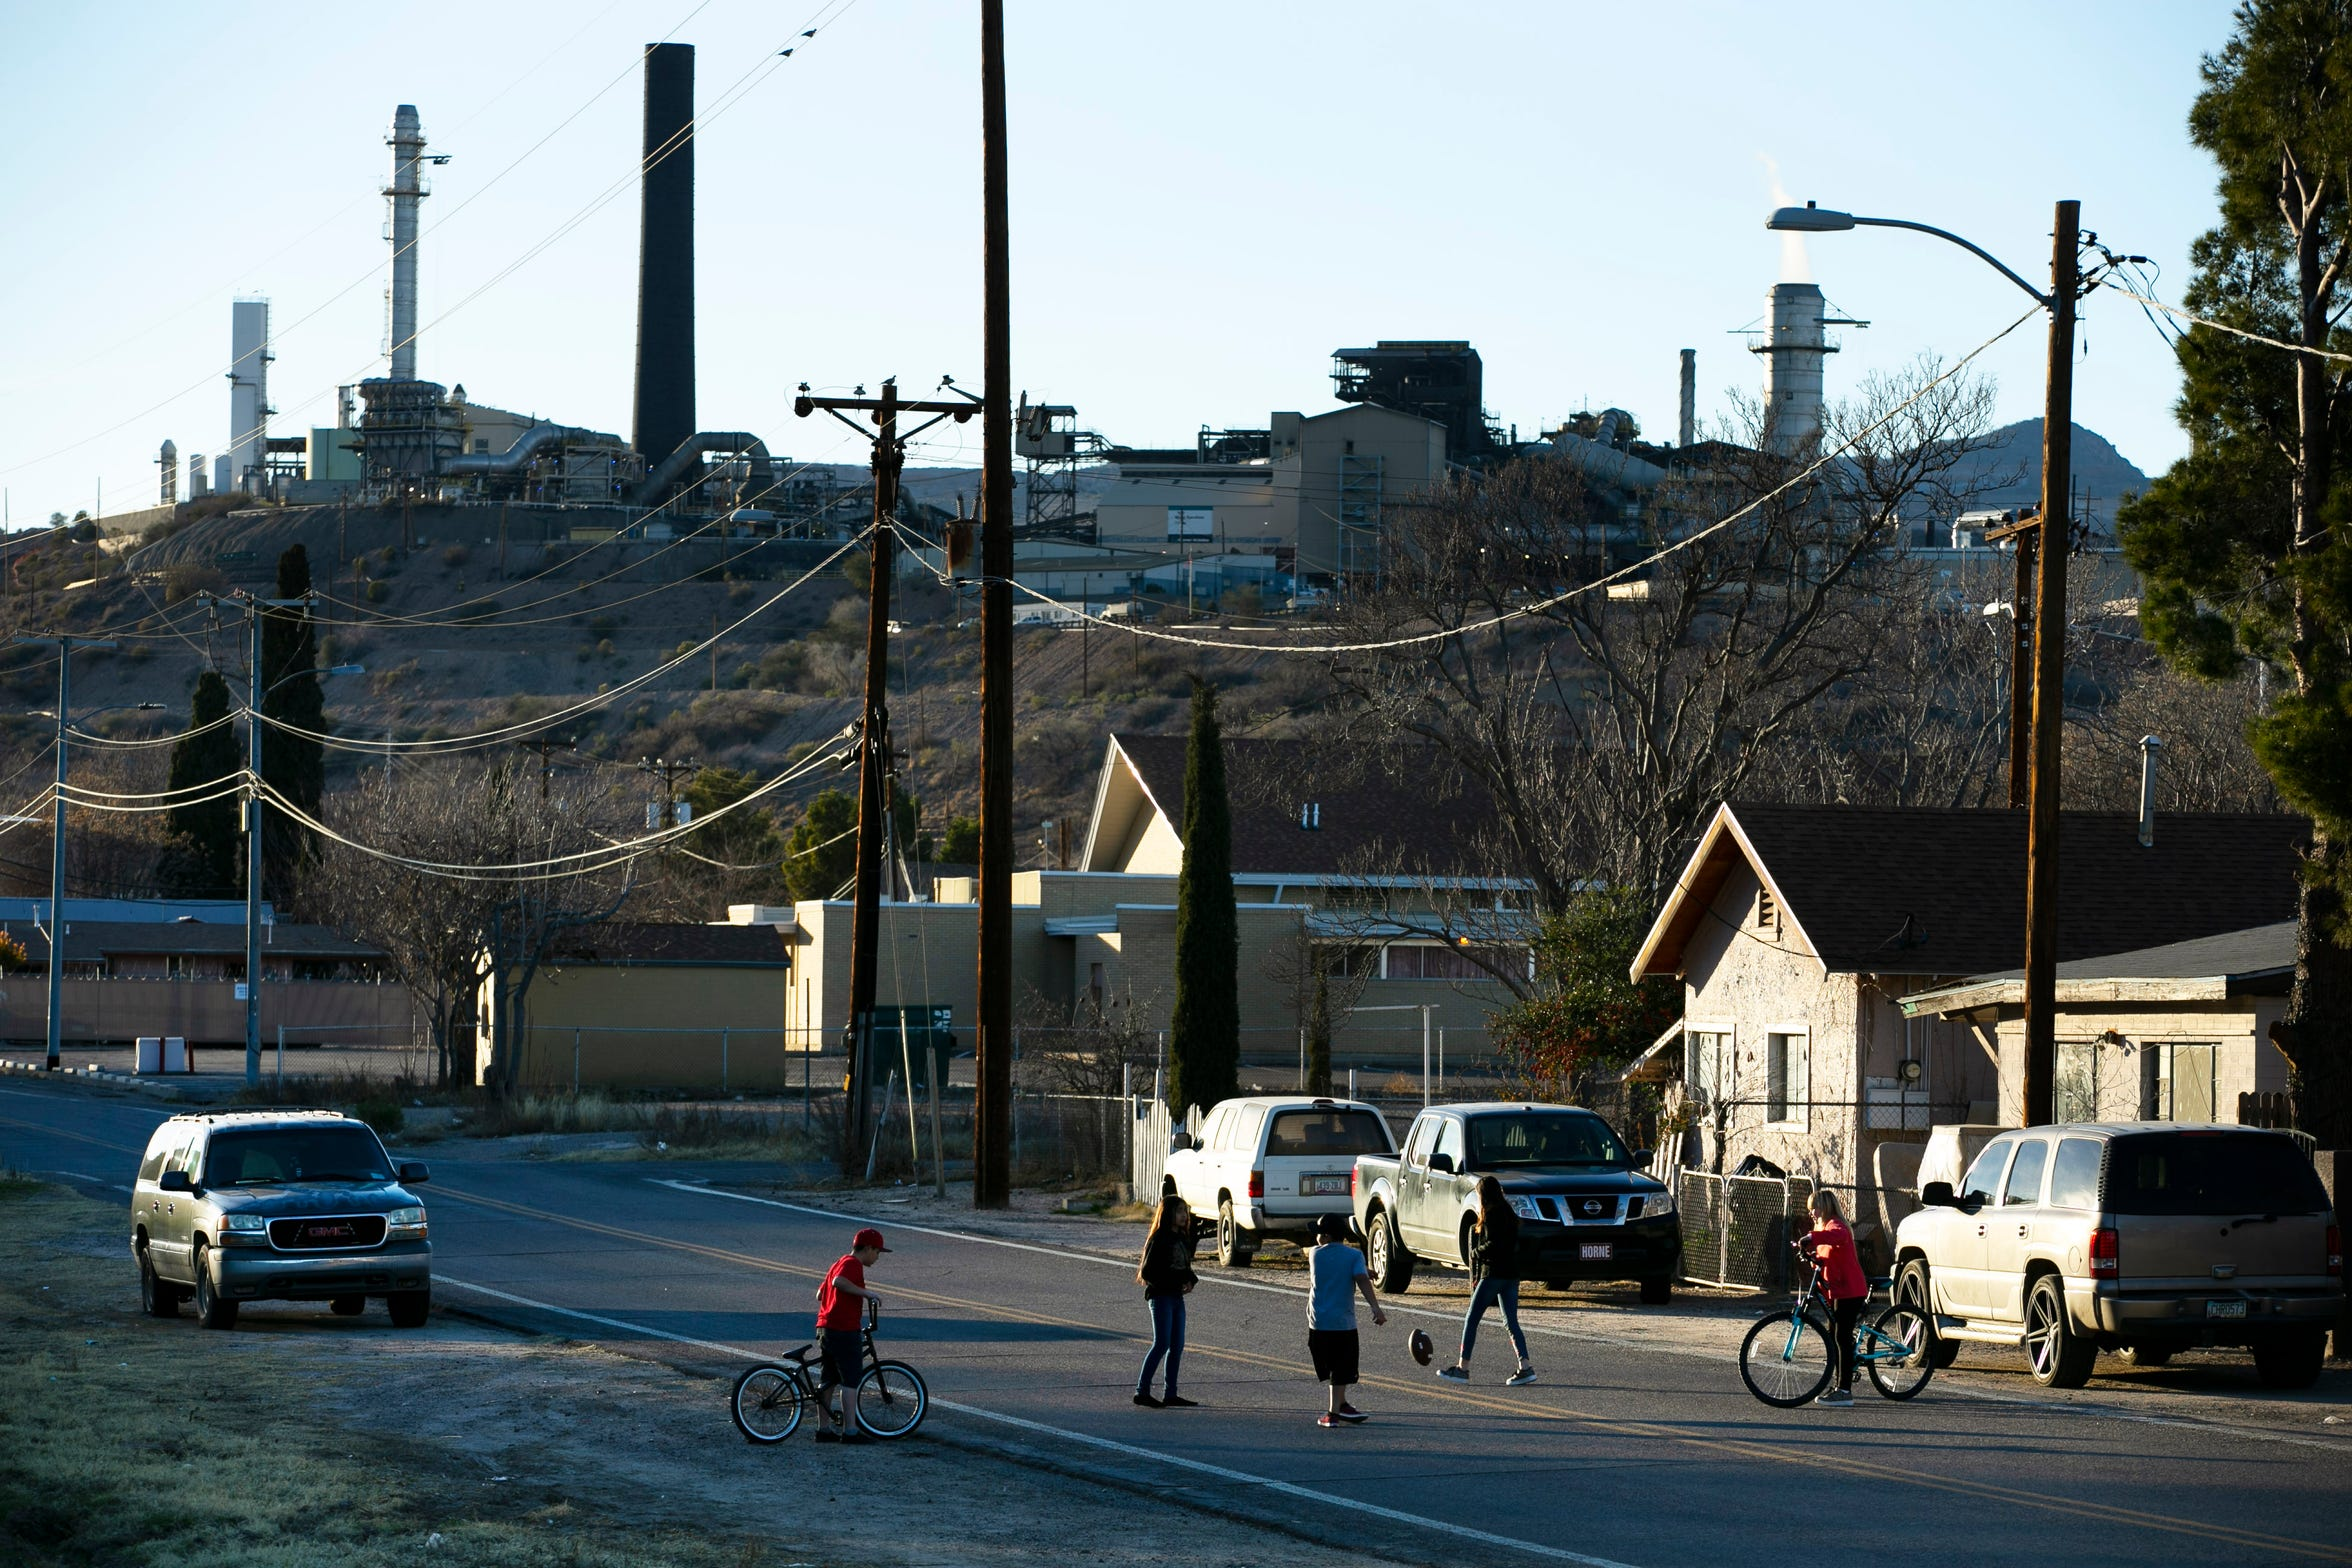 Children play on the street in Claypool, Ariz., in front of of the Freeport-Mcmoran Copper & Gold mine in Claypool on January 24, 2019. Joe Campos worked at this mine in the late 1940s which was then the Inspiration Consolidated Copper Company mine.